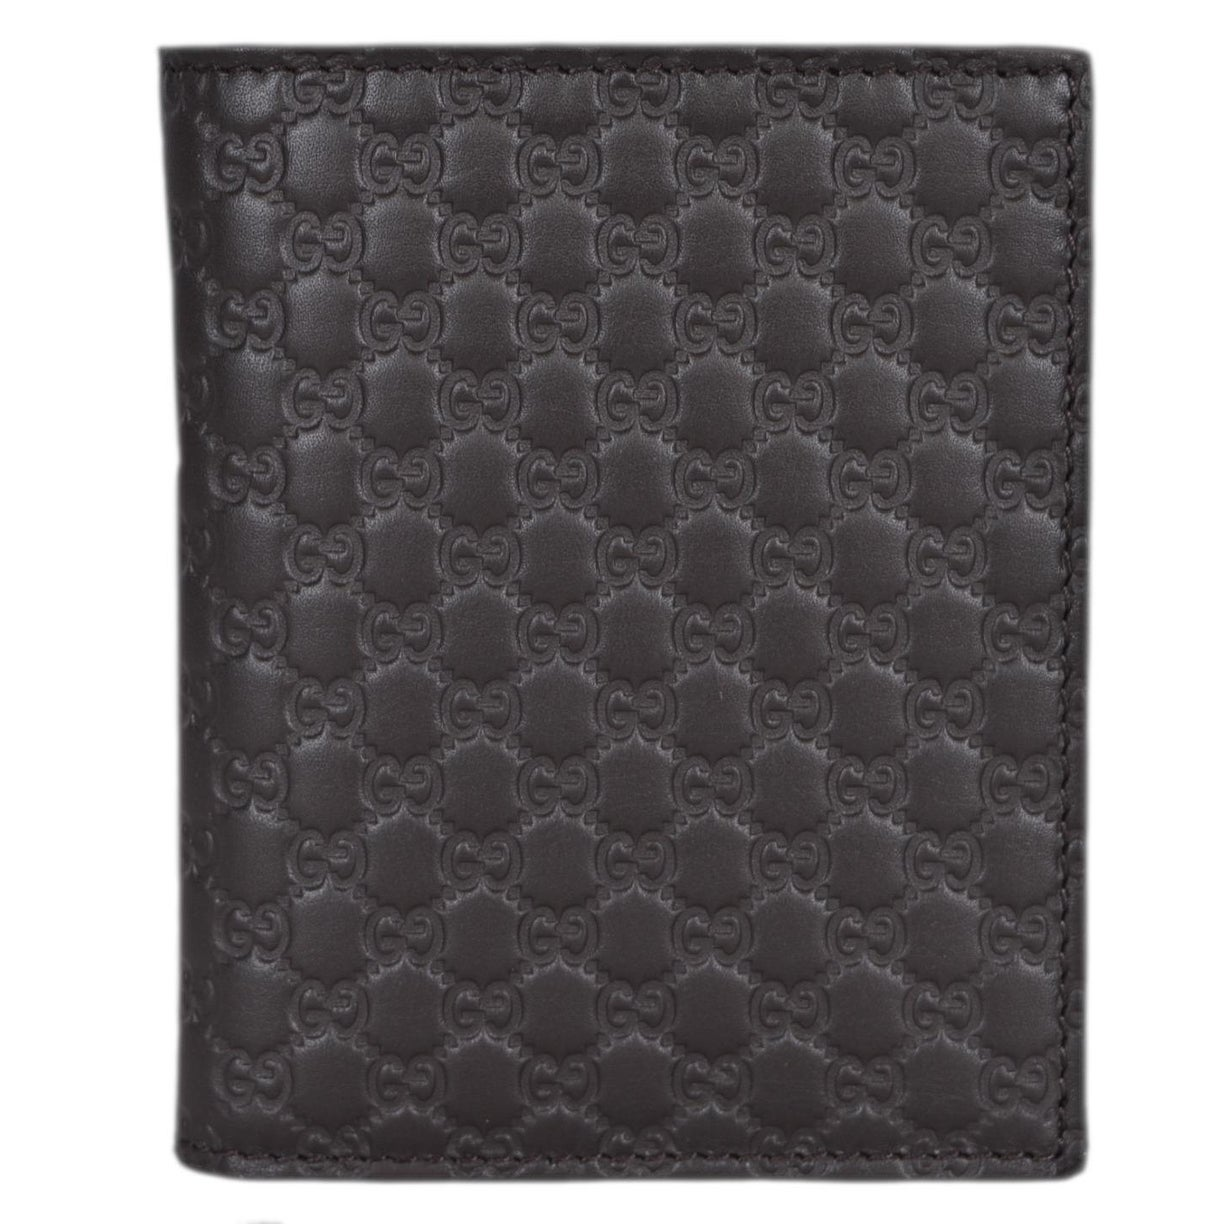 7a664252049c Shop Gucci 292533 Men's Brown Leather Micro GG Guccissima Vertical Bifold  Wallet - 3 7/8